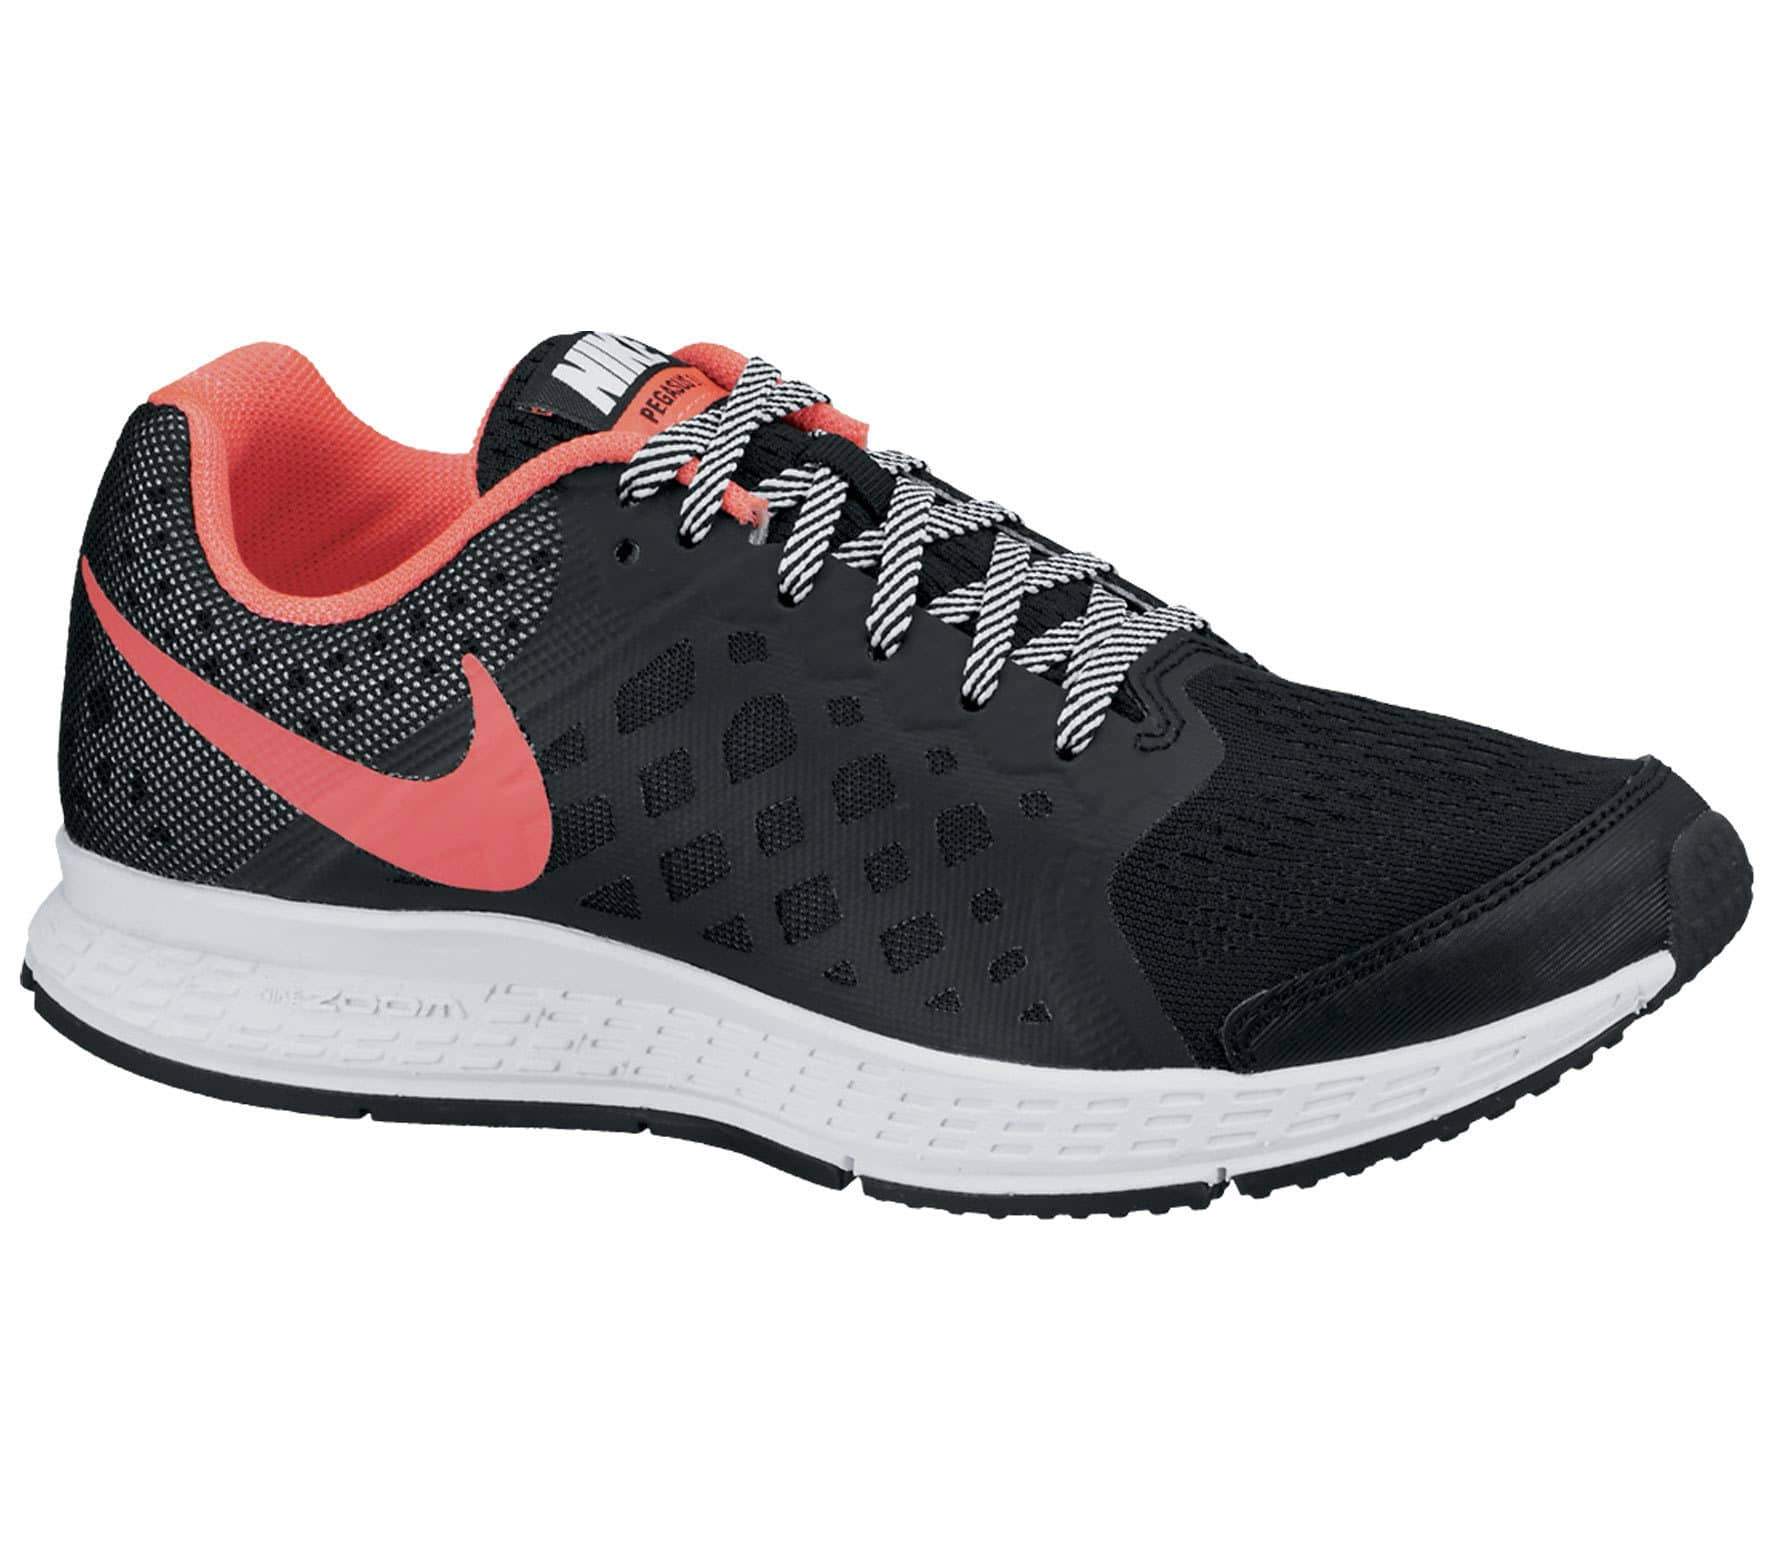 new arrival d6acc 331c3 Nike - Zoom Pegasus 31 Children running shoes (black red)